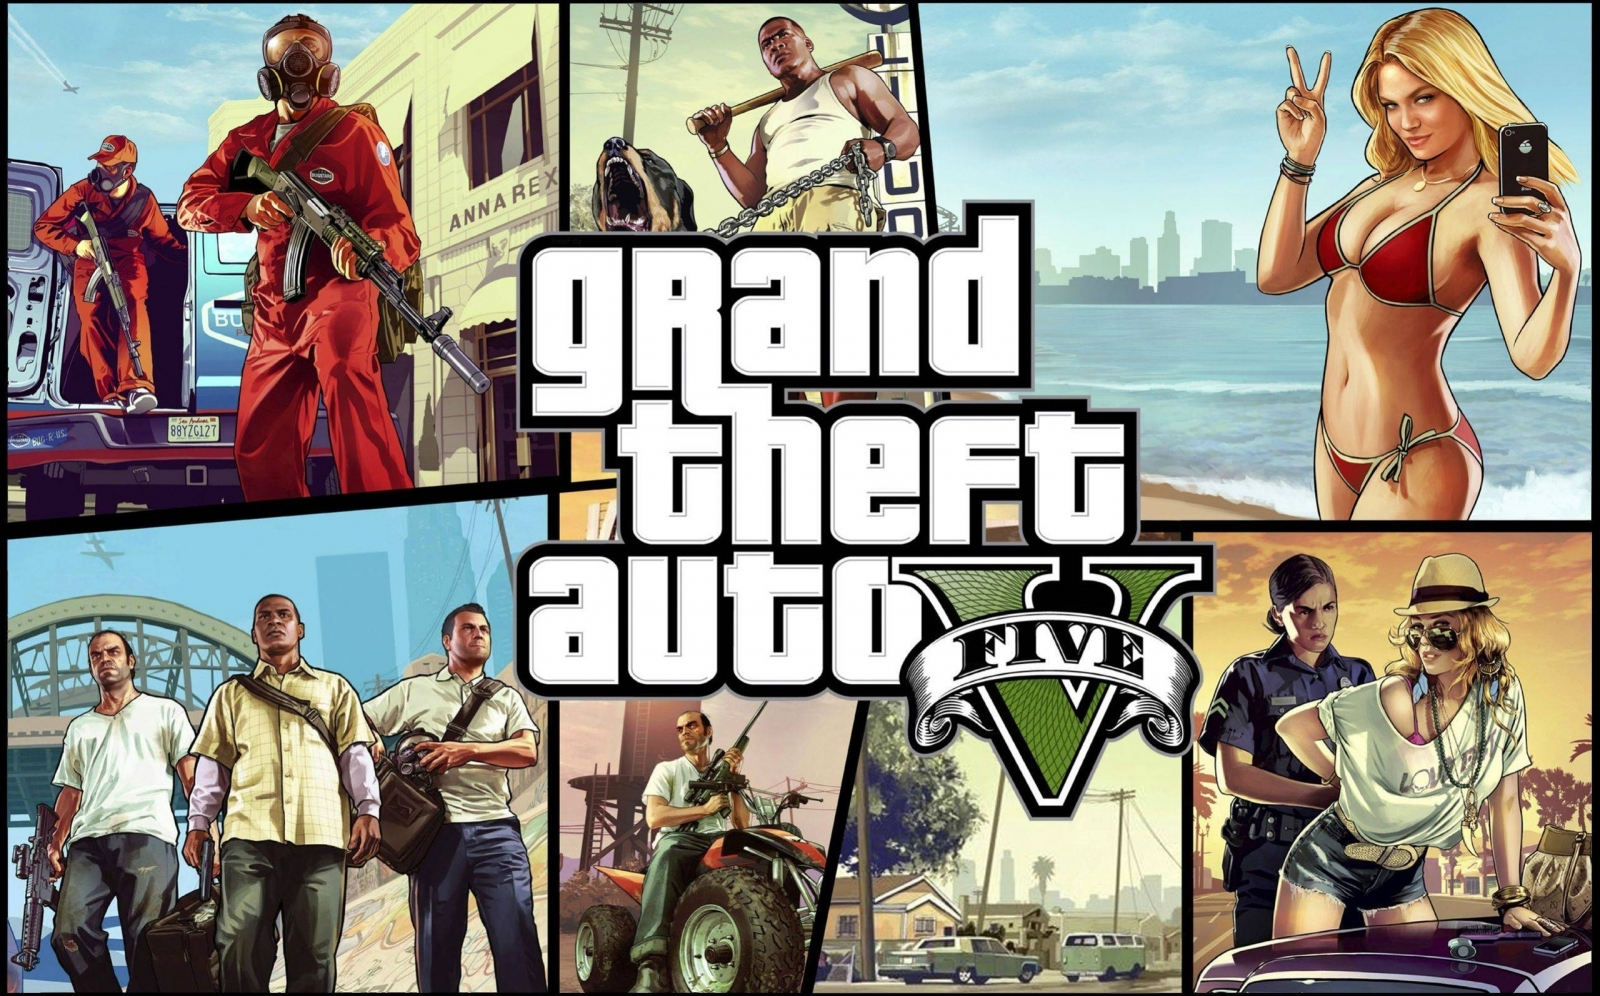 GTA 5 Online: Heist DLC Release Confirmed for 1.18 Patch, New Leaked Radio Stations for GTA 5 Next-Gen